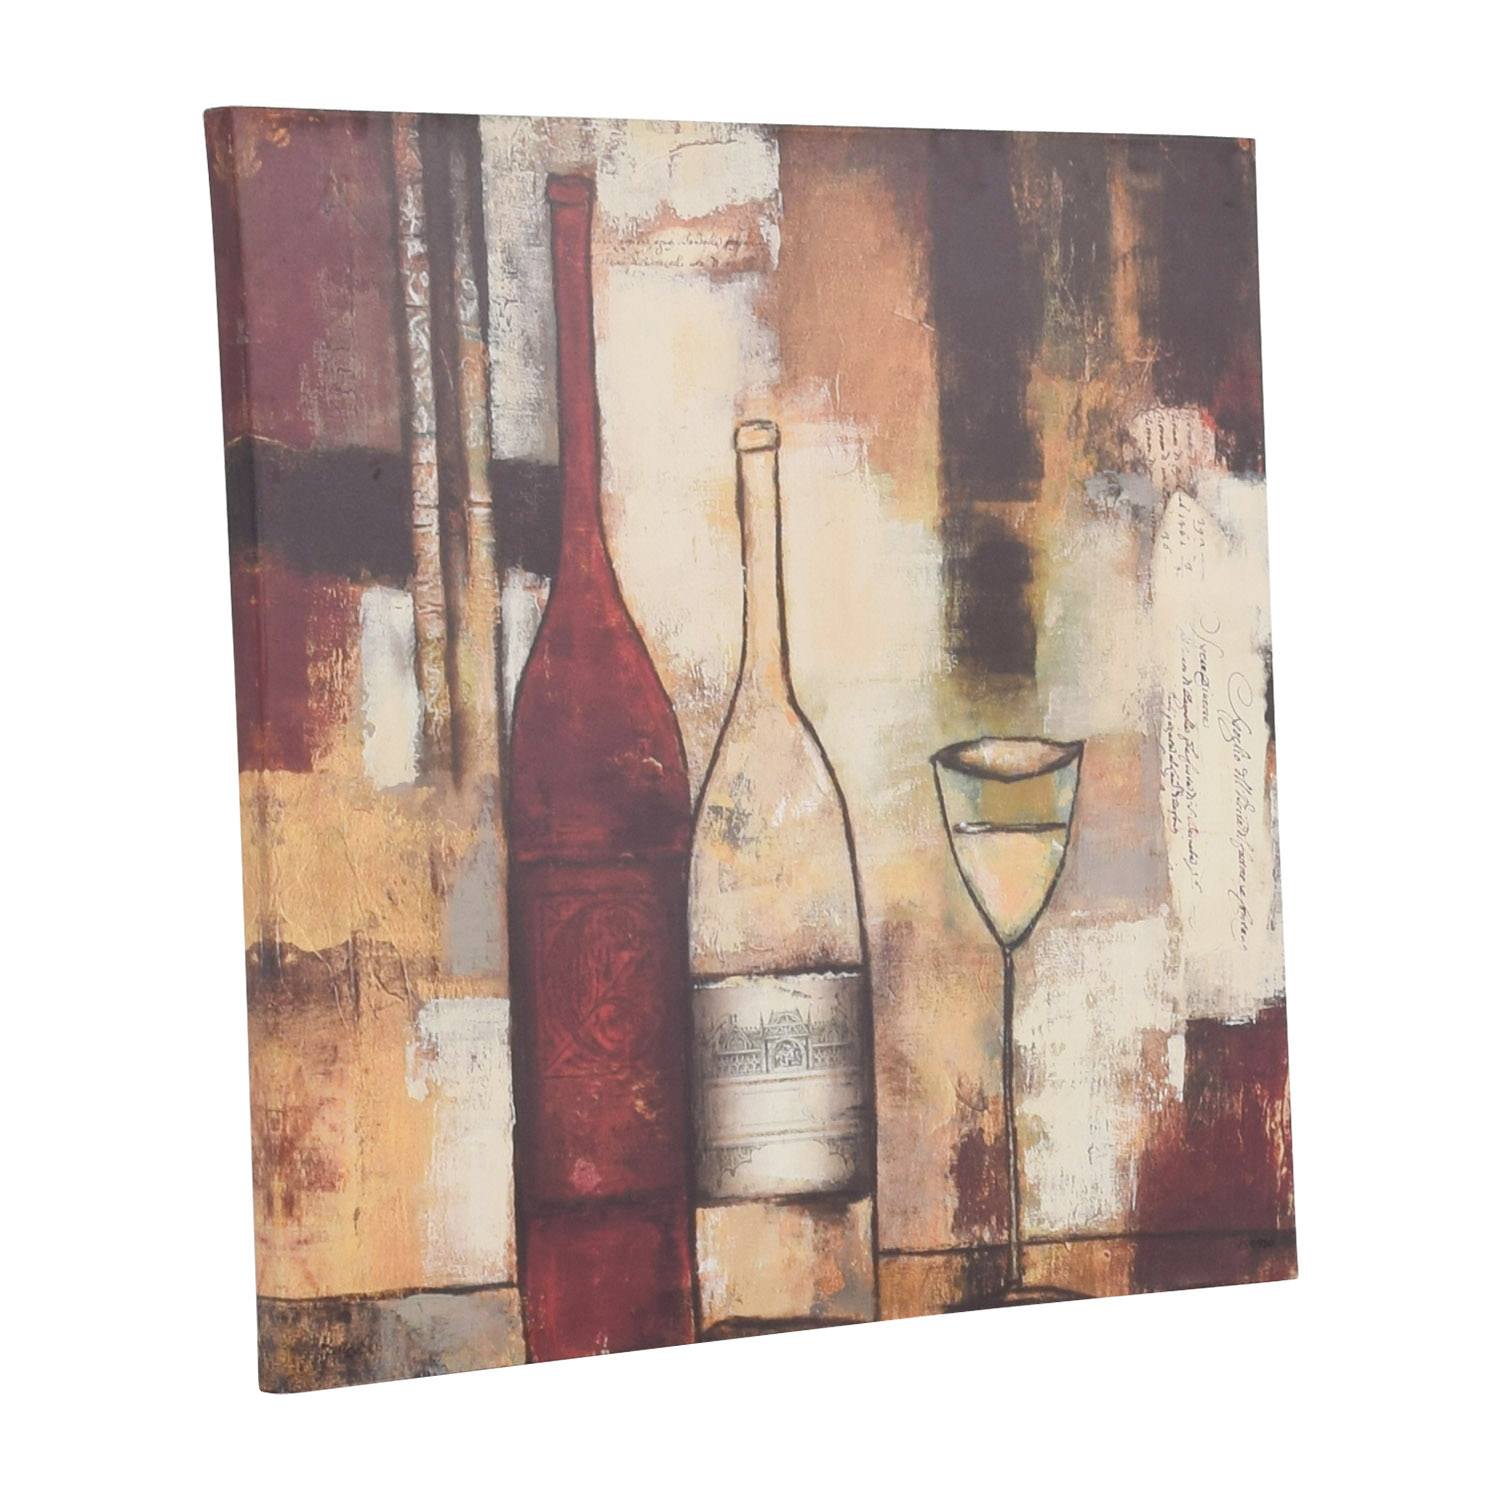 buy Wine Abstract Wall Art online